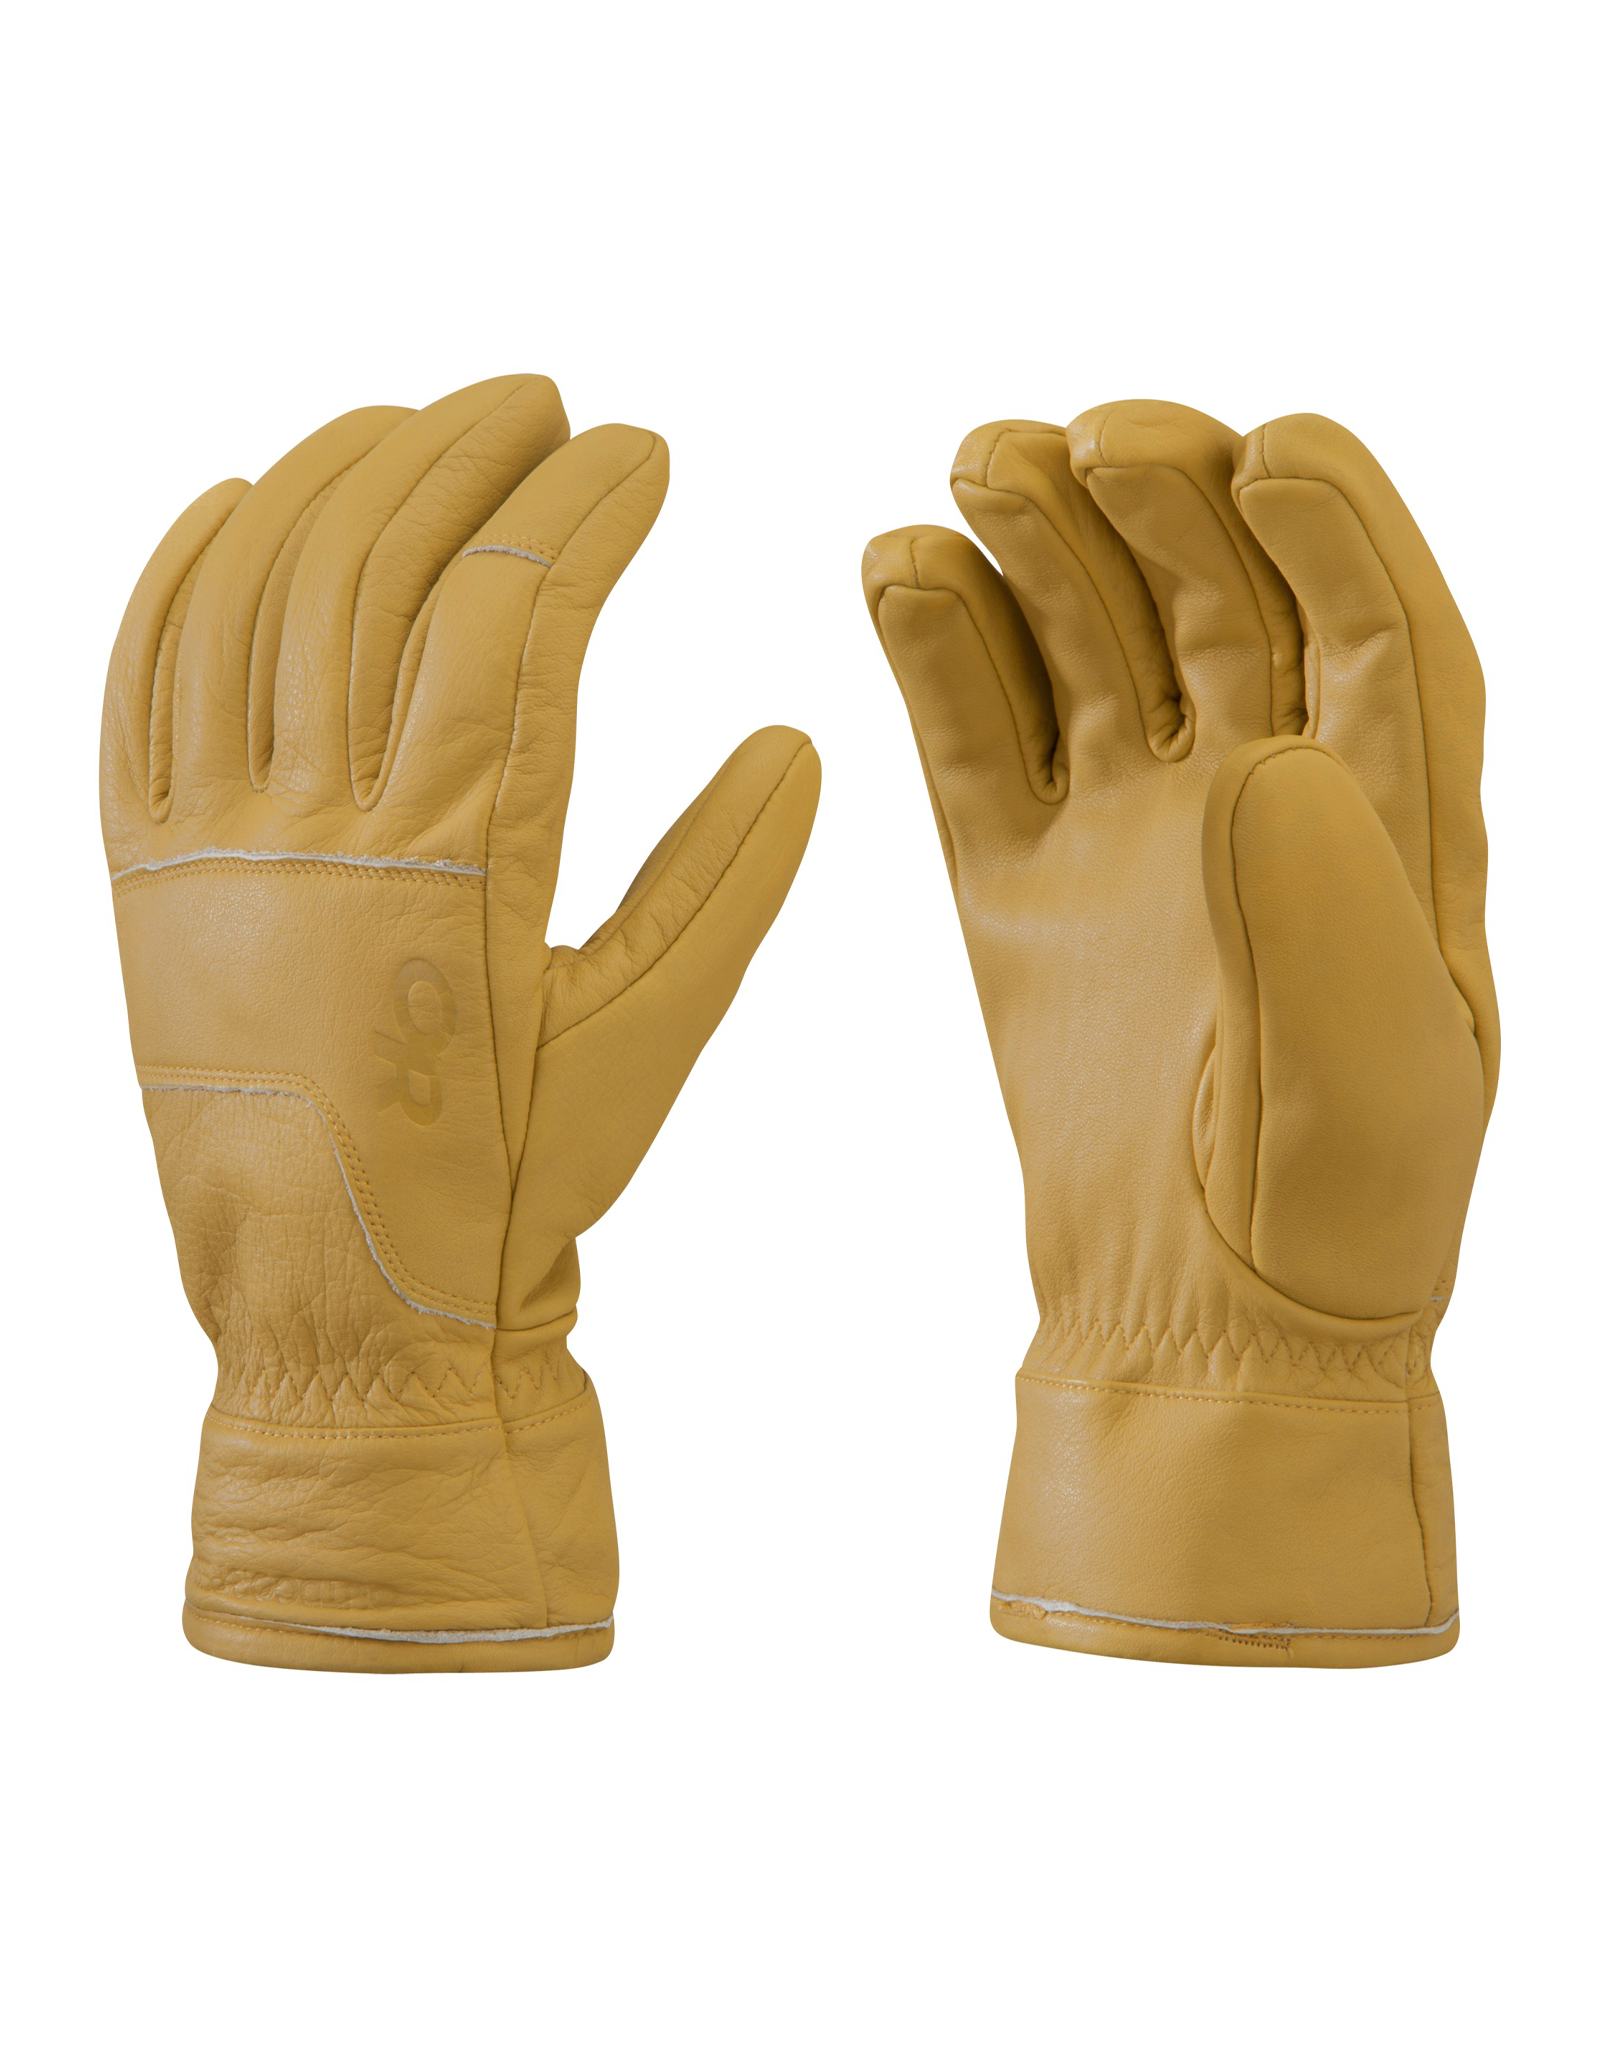 Outdoor Research Outdoor Research M's Aksel Work Glove